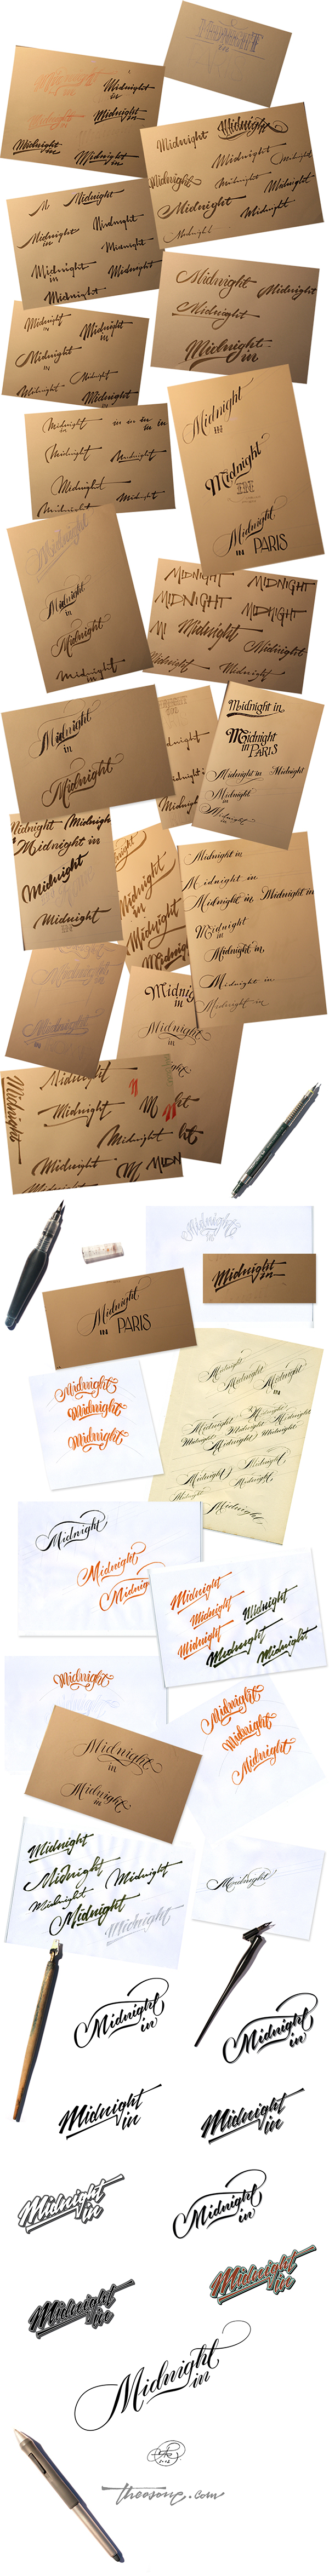 lettering, custom, brush, copperplate, glamour, spencerian, hand, sign, painting, Typo